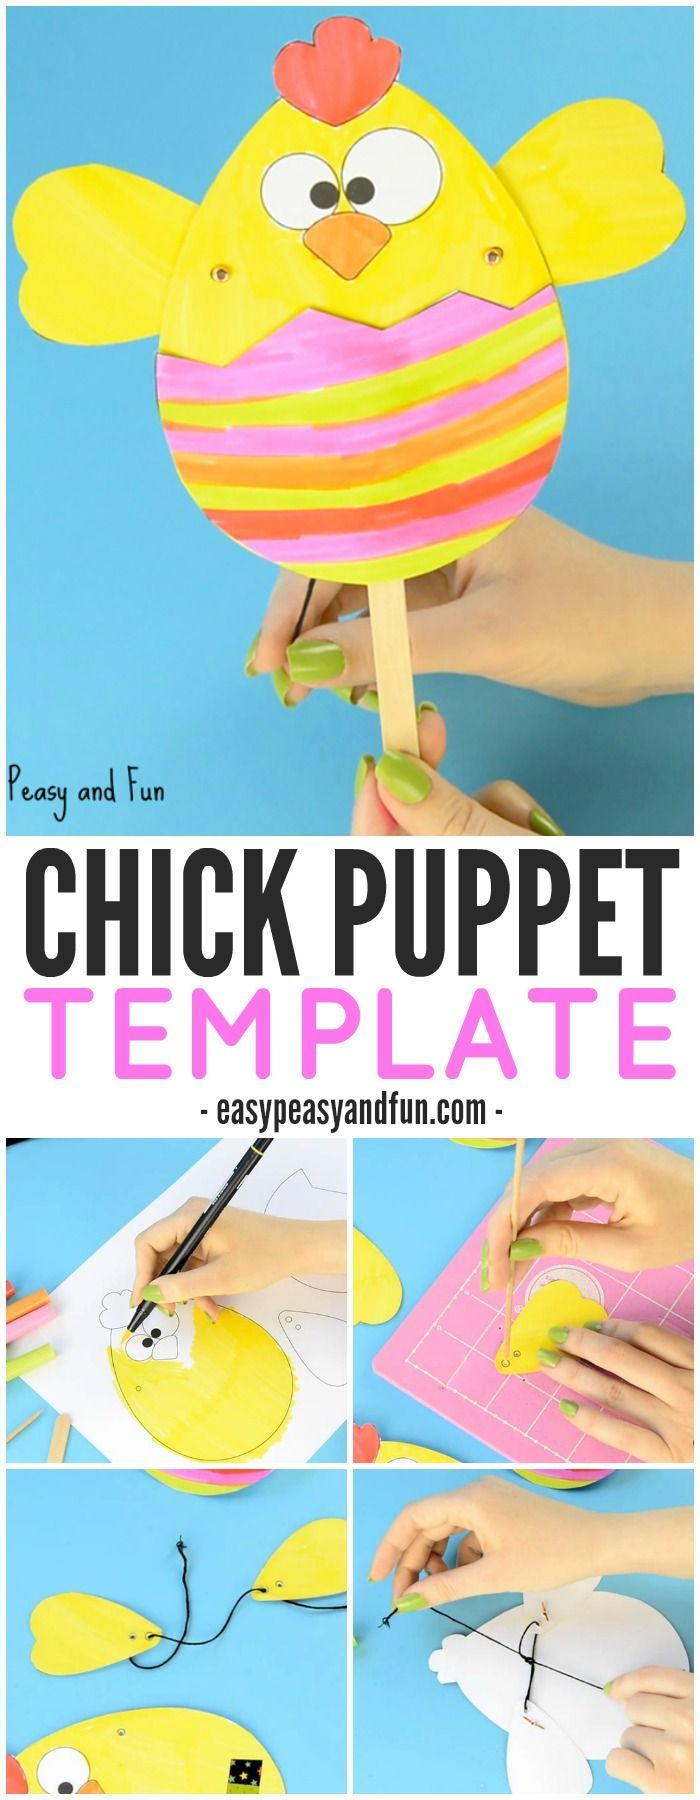 Baby shower photo booth ideas. Paper Chick Puppet Craft Template – Fun Easter Idea